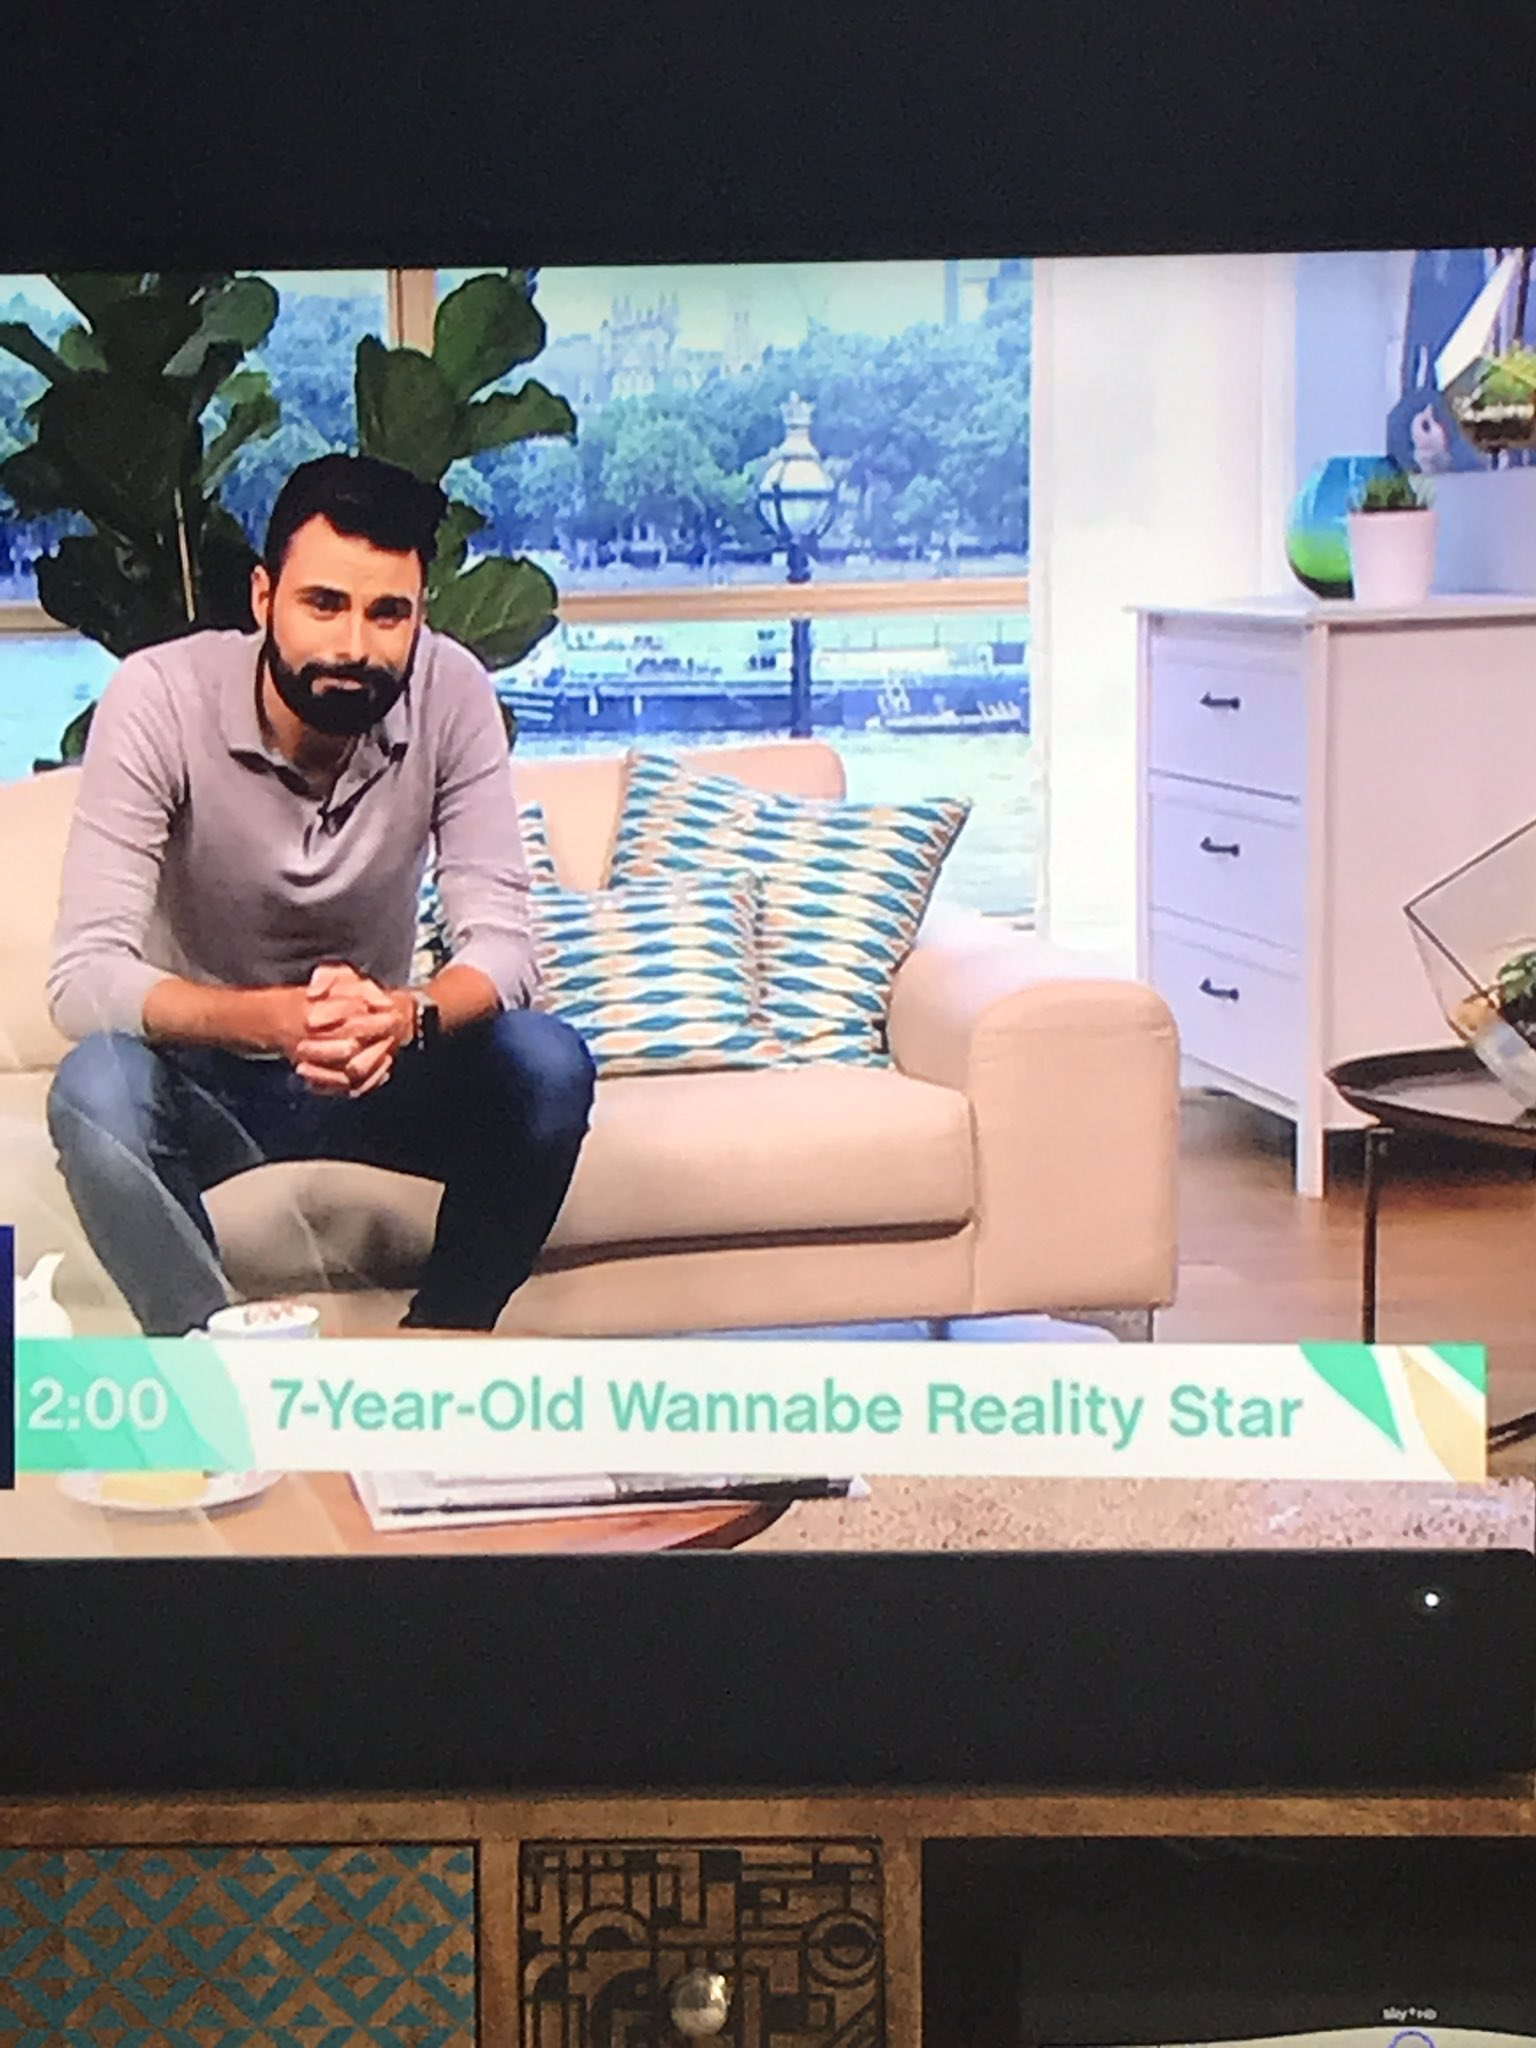 RT @ChrisYounie: Can't believe Rylan's only that age. Shook. 🙈 https://t.co/UxFTLlXP4T